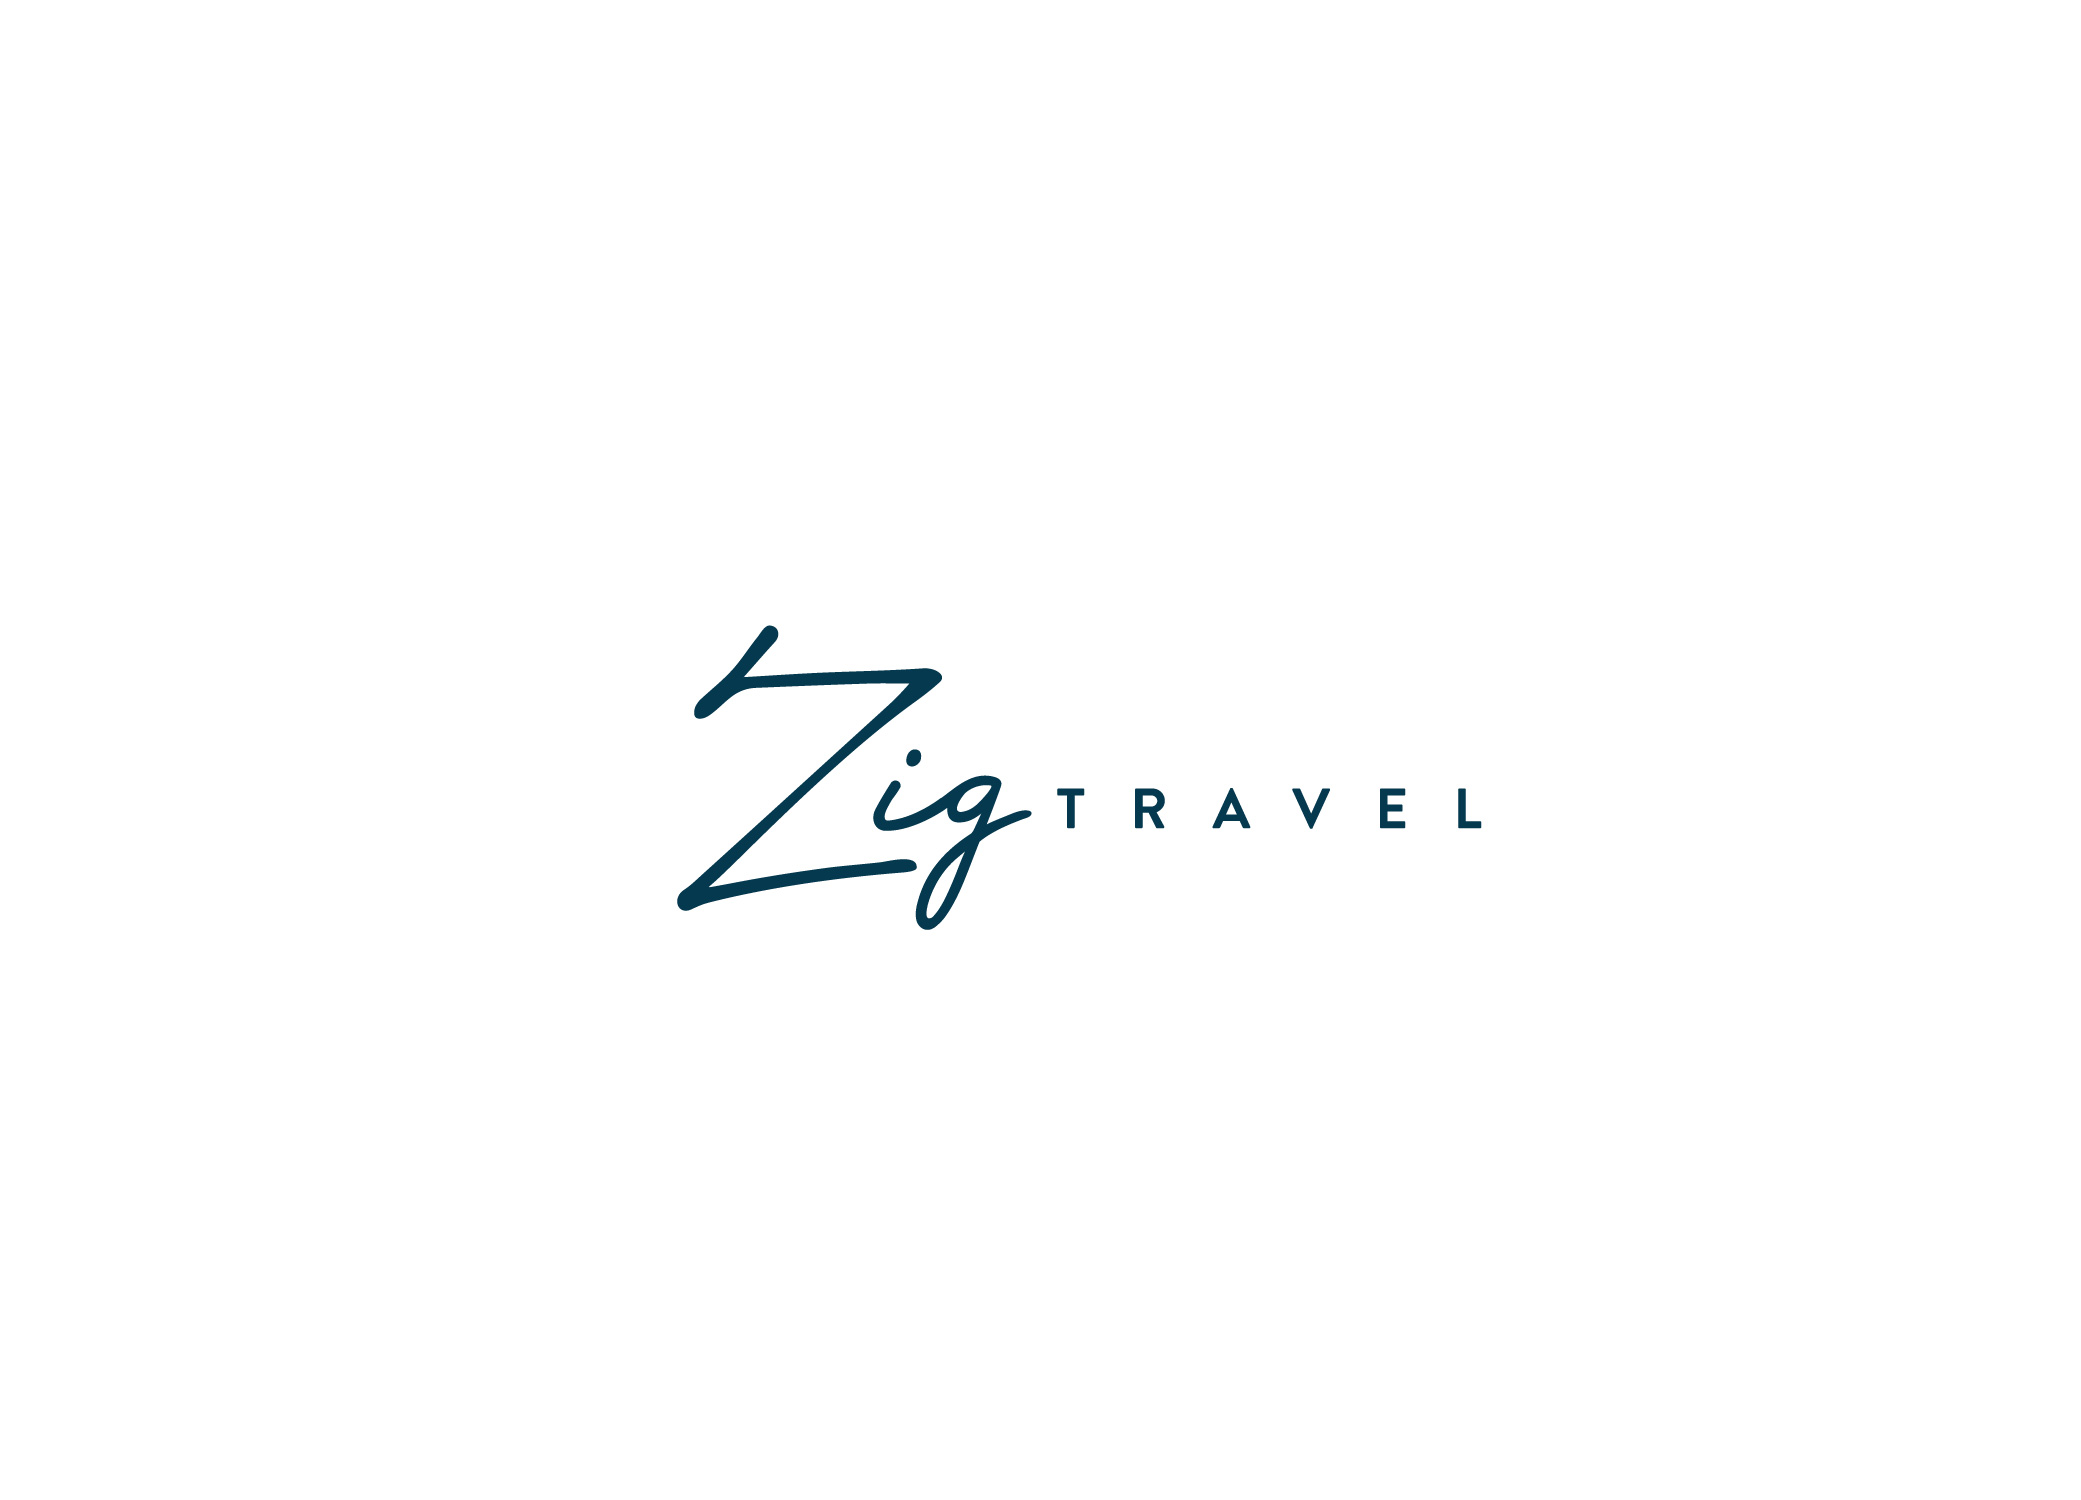 Zig Travel distinguished logo design in navy with Zig in luxurious script font and Travel in a sleek sans serif.